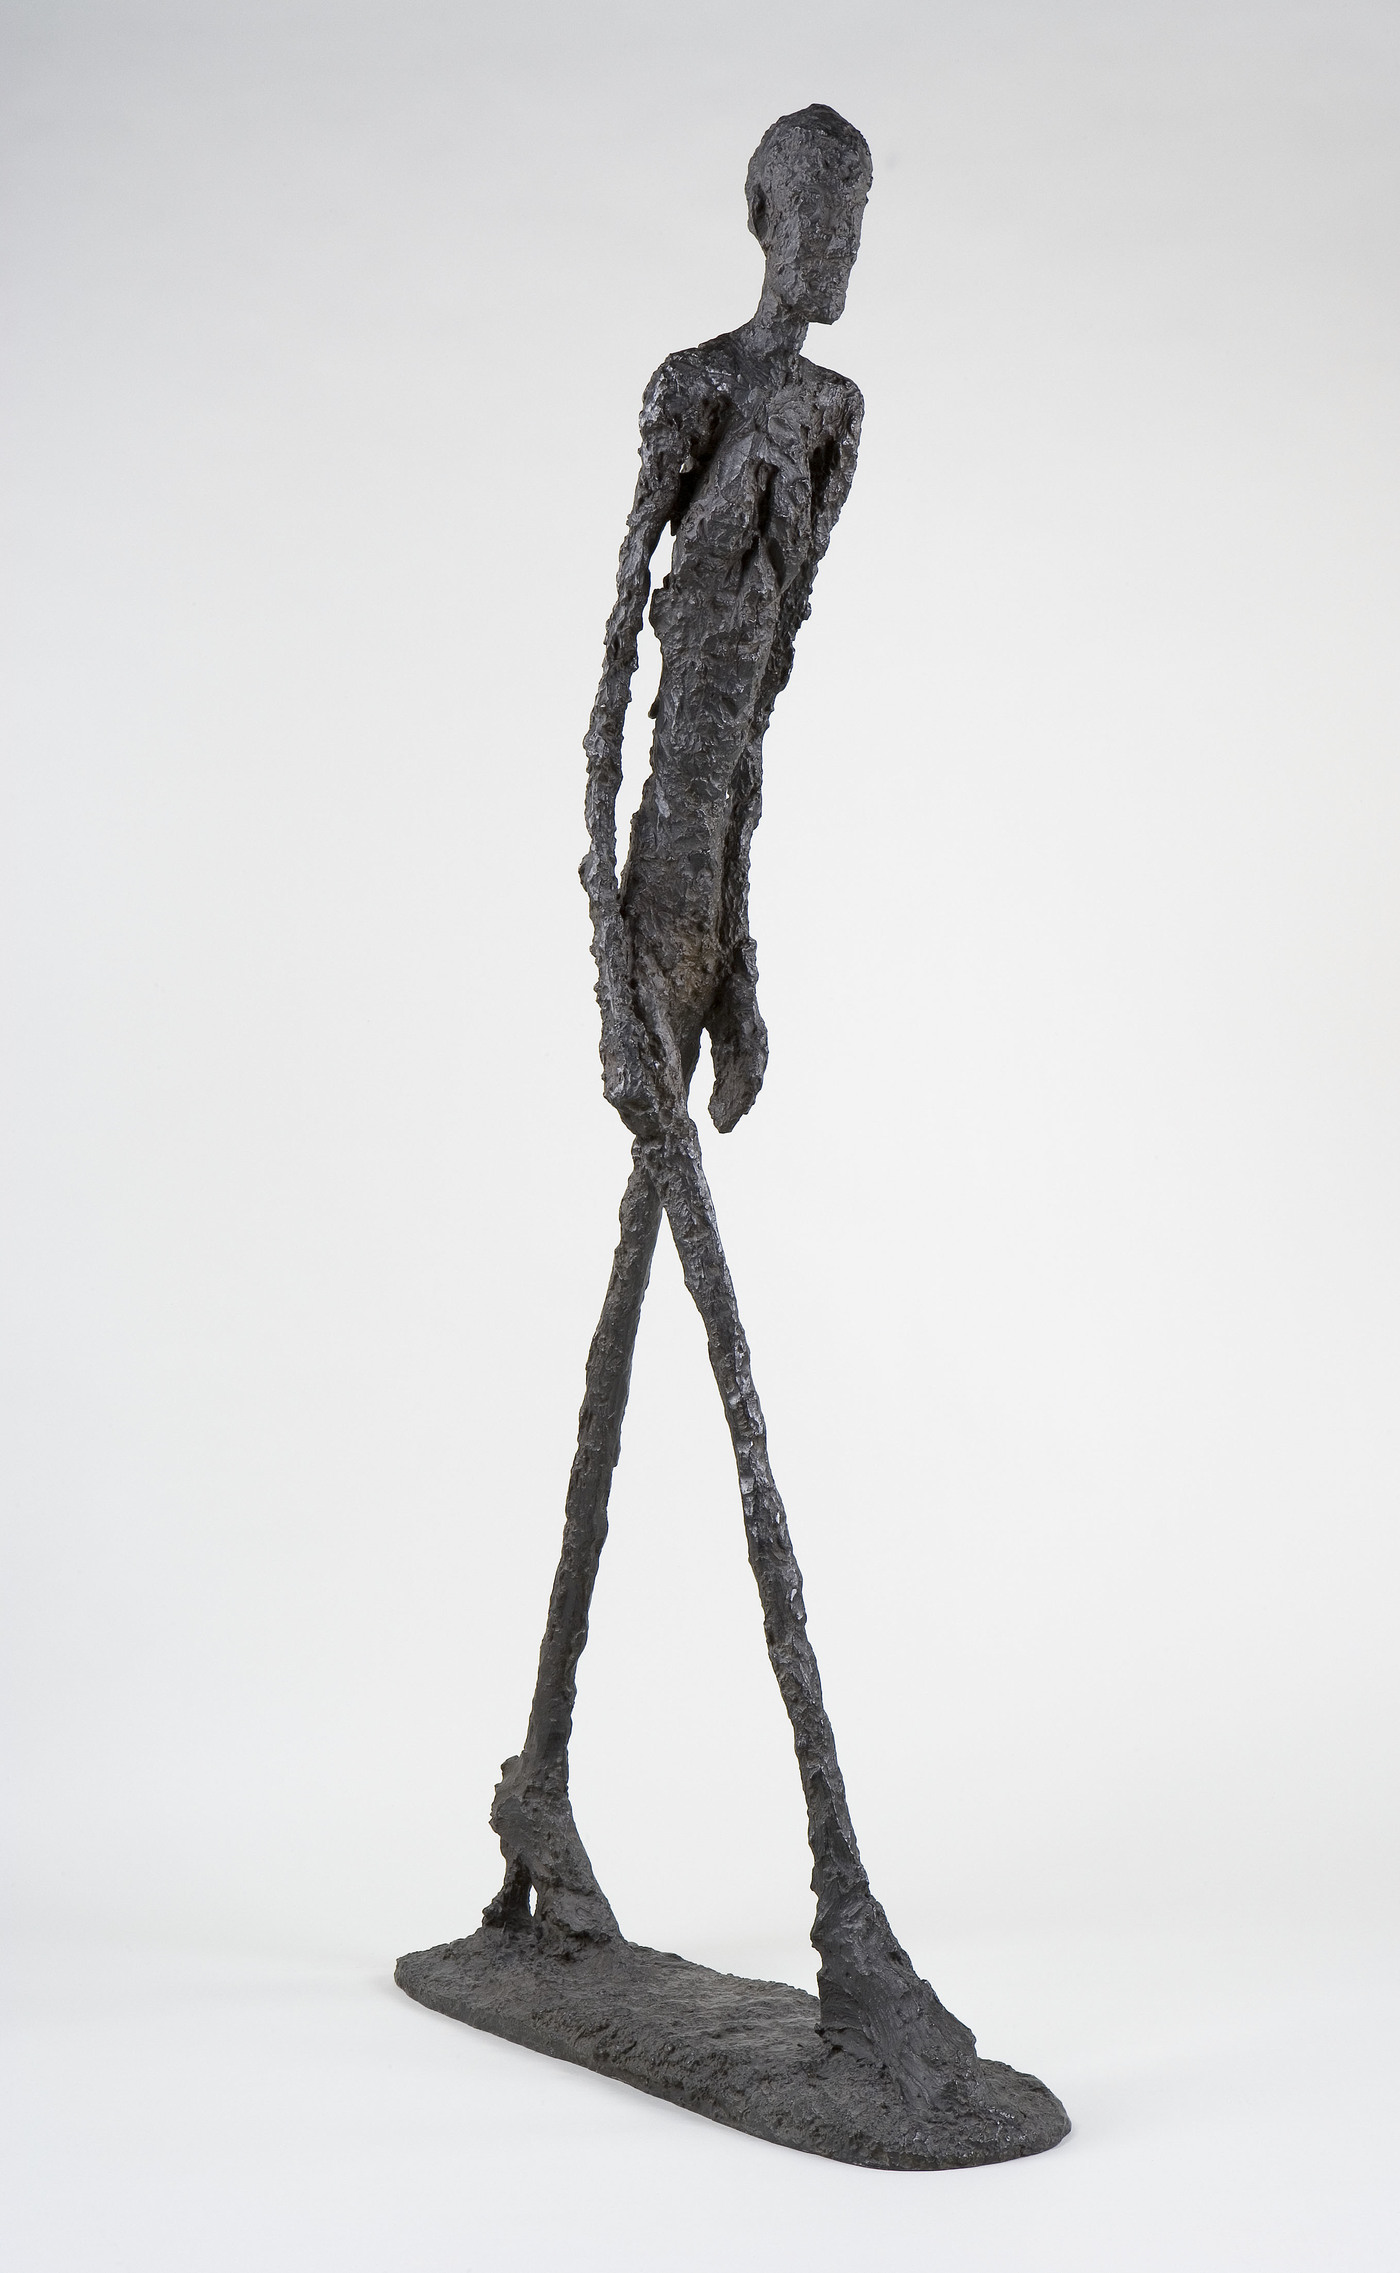 Alberto Giacometti Giacometti 39s Sculptures Bare The Scars Of Our Daily